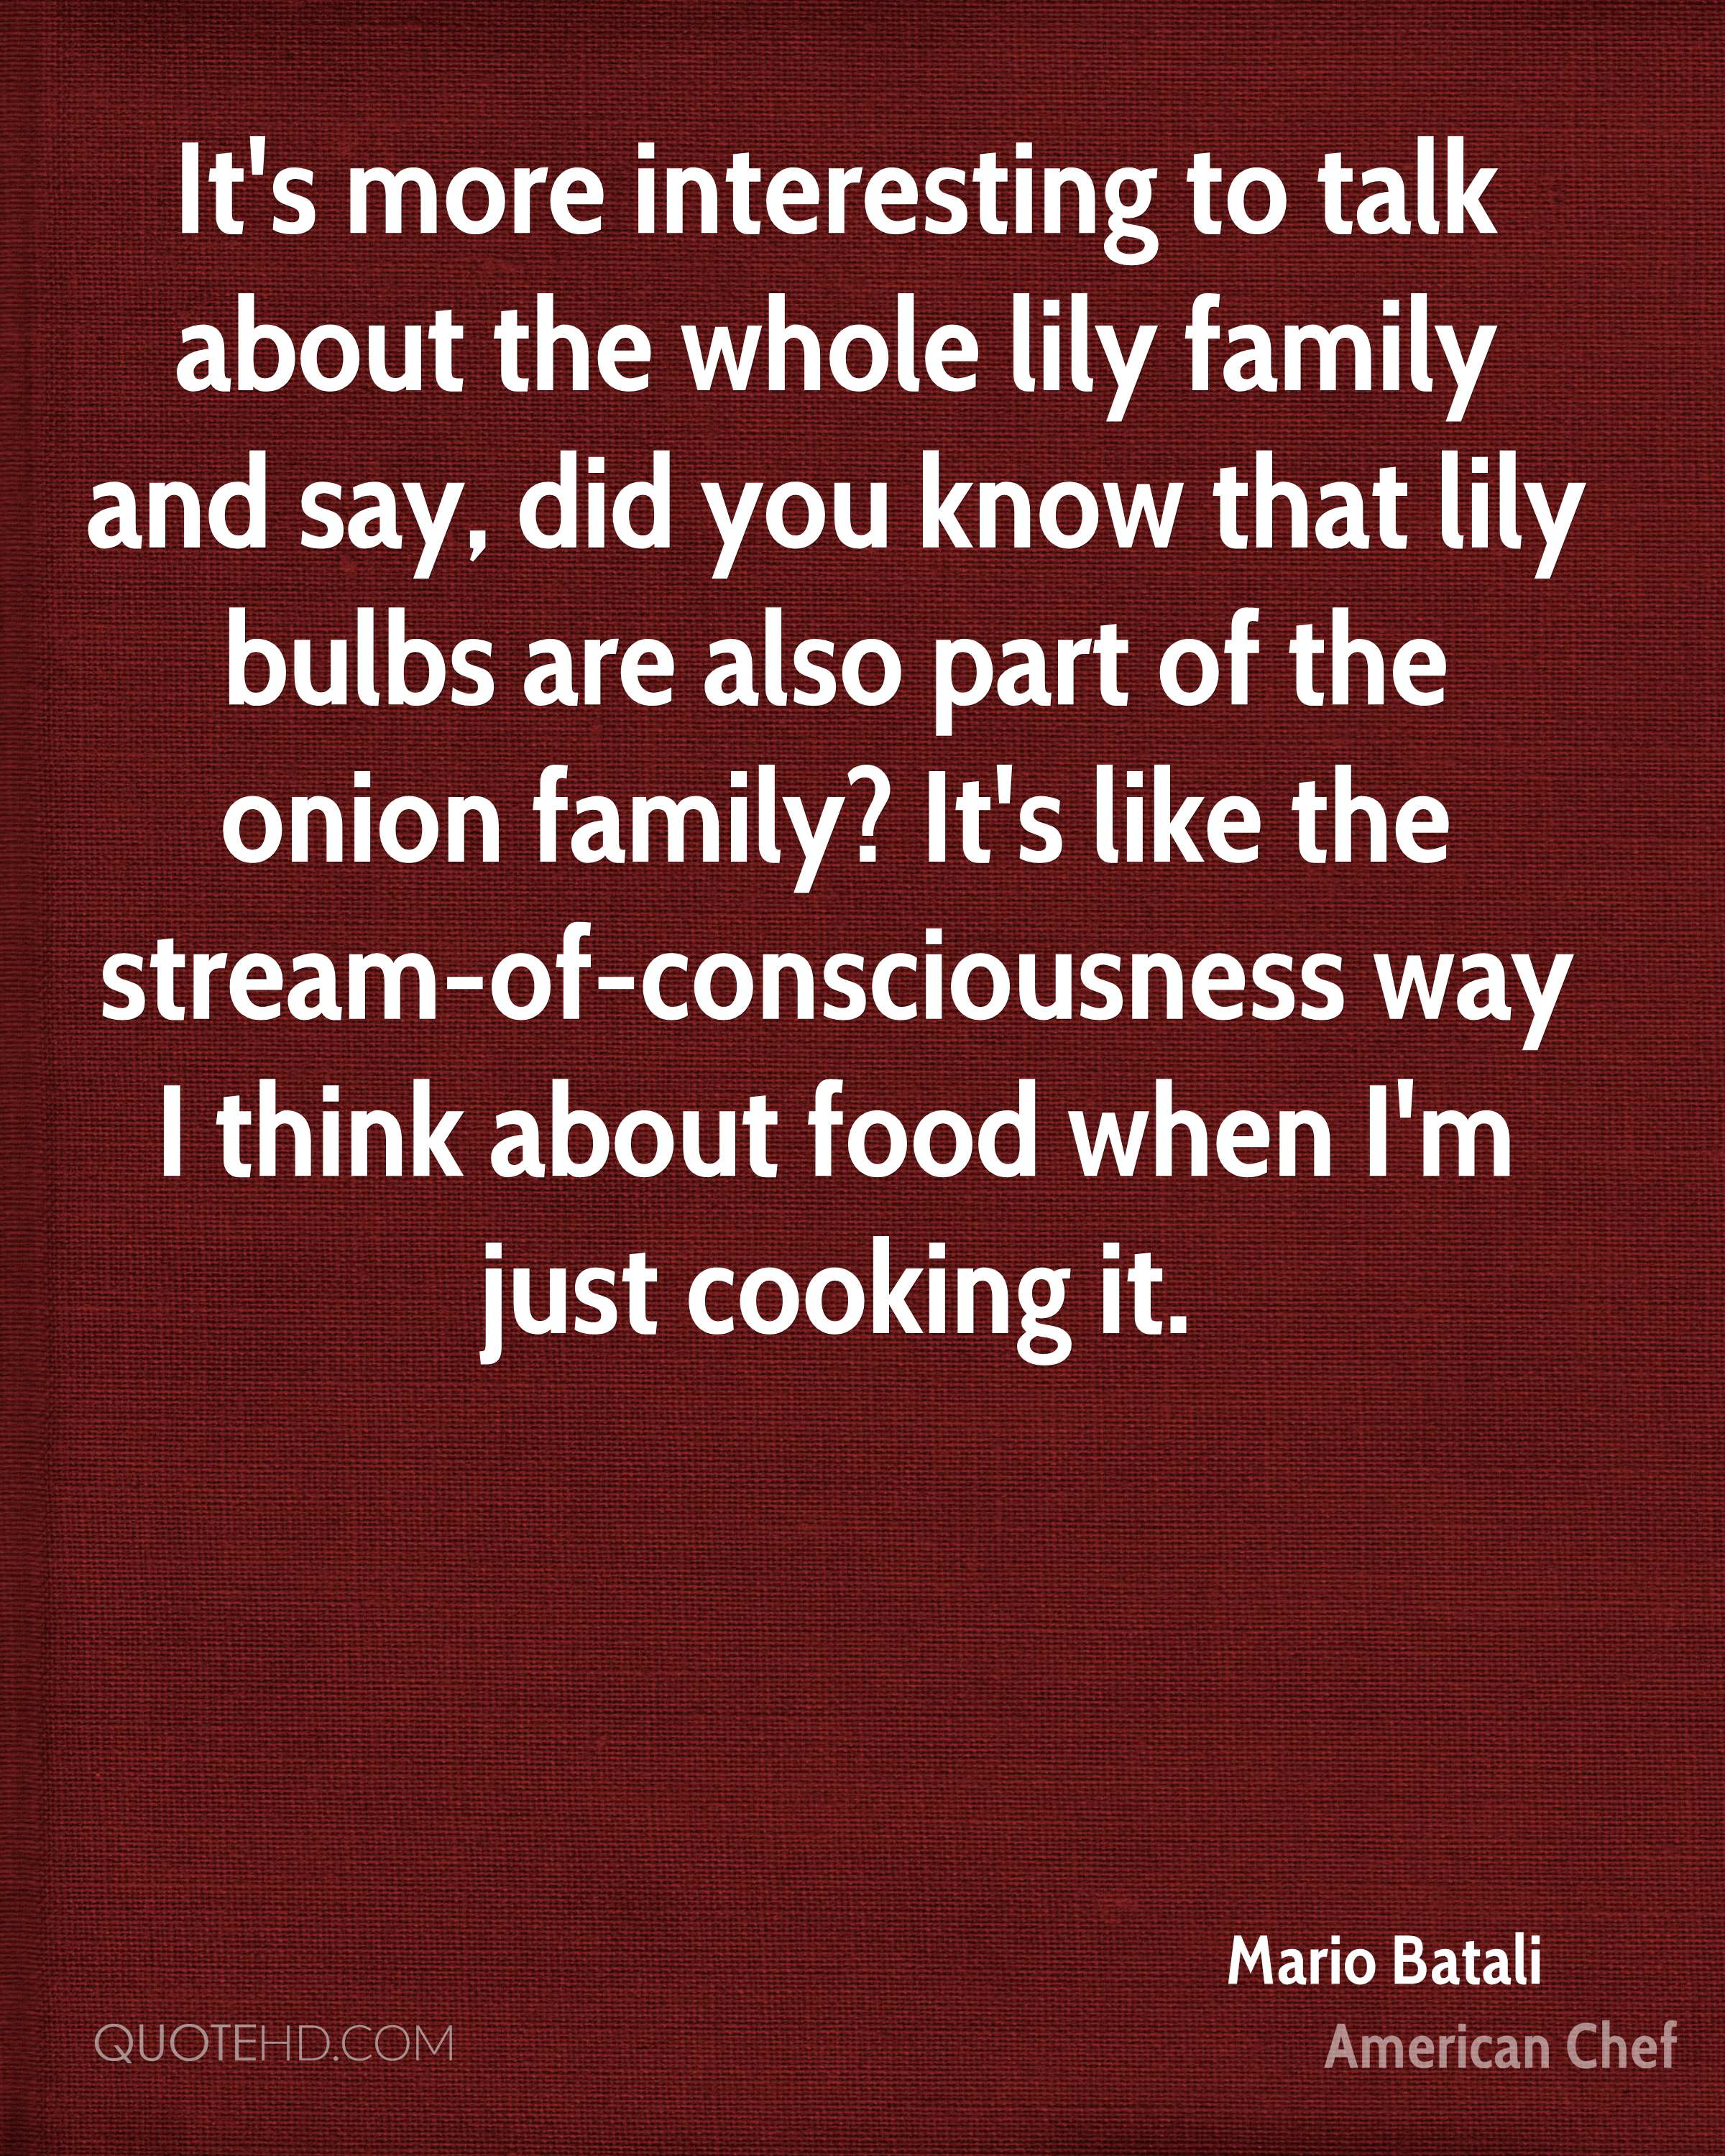 It's more interesting to talk about the whole lily family and say, did you know that lily bulbs are also part of the onion family? It's like the stream-of-consciousness way I think about food when I'm just cooking it.